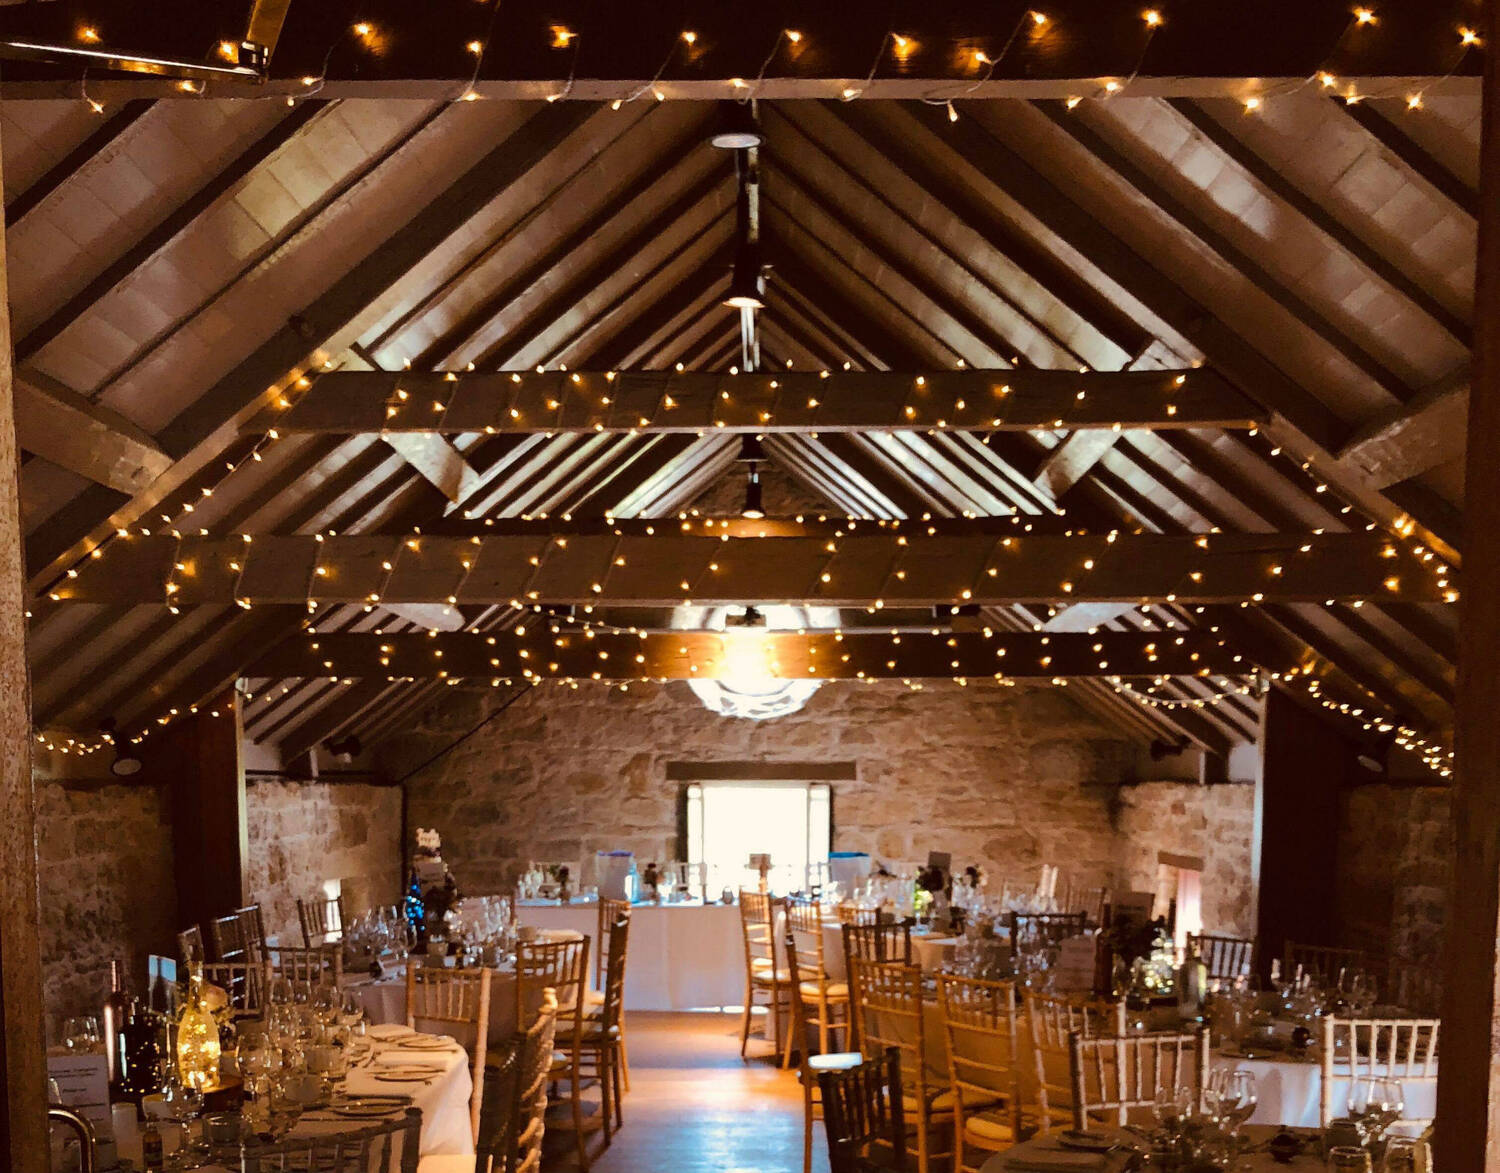 Interior of a stone barn with wooden rafters lit with fairy lights and with tables set up for a wedding reception.